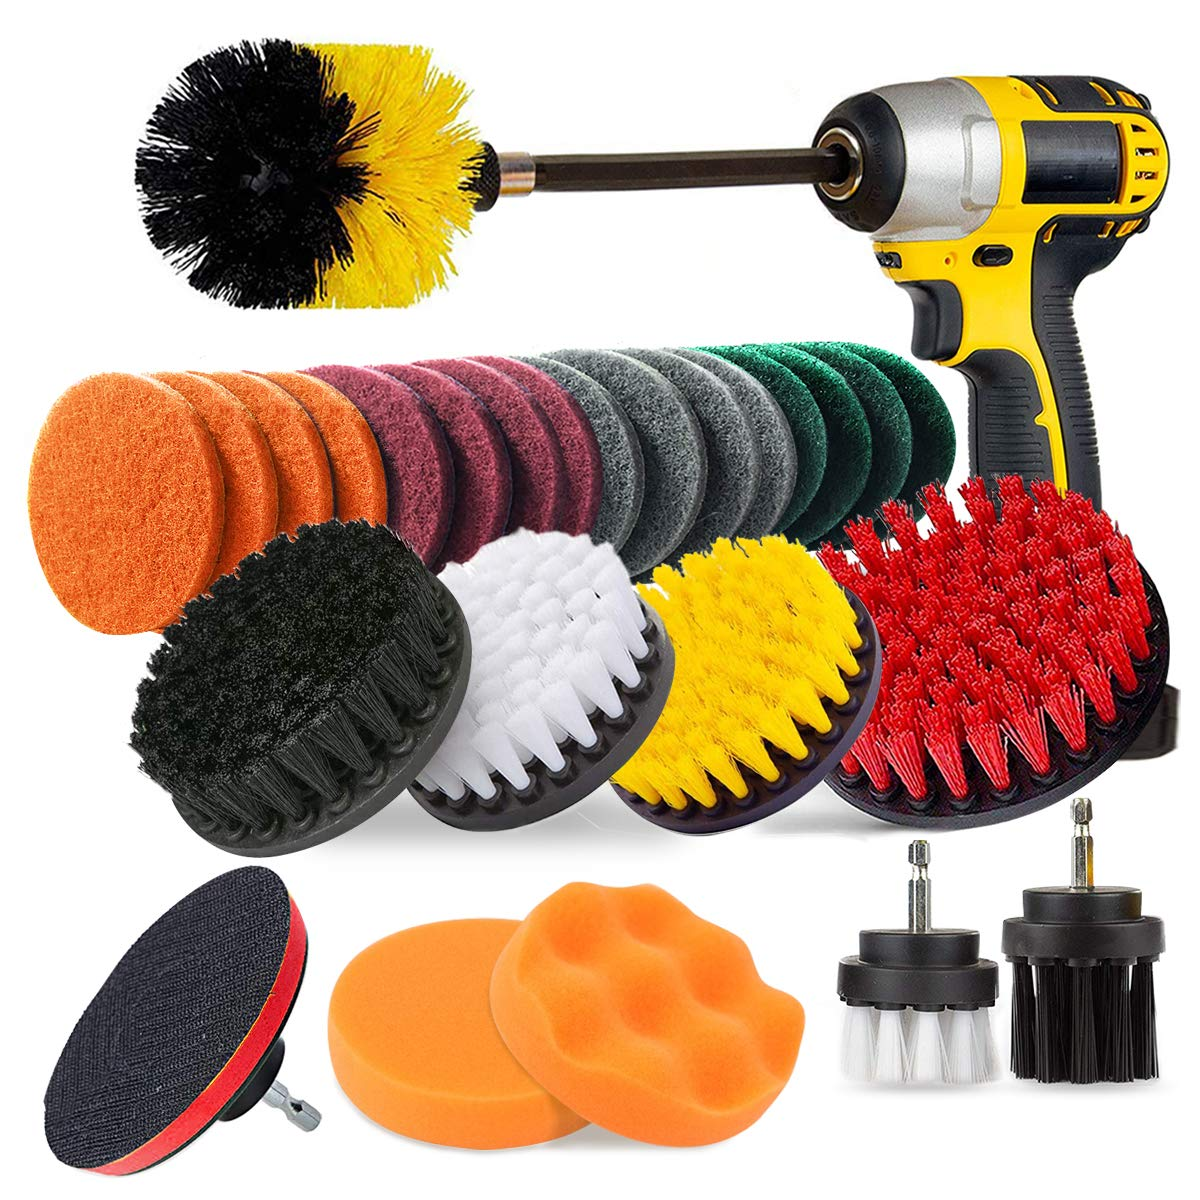 JUSONEY 28 Piece Drill Brush Attachment- Drifferent Size and Hardness- Premium Scrub Pads & Sponge- With Extend Long Attachment- Power Scrubber Brush Cleaning for Grout, Tiles, Sinks, Bathtub, Kitchen